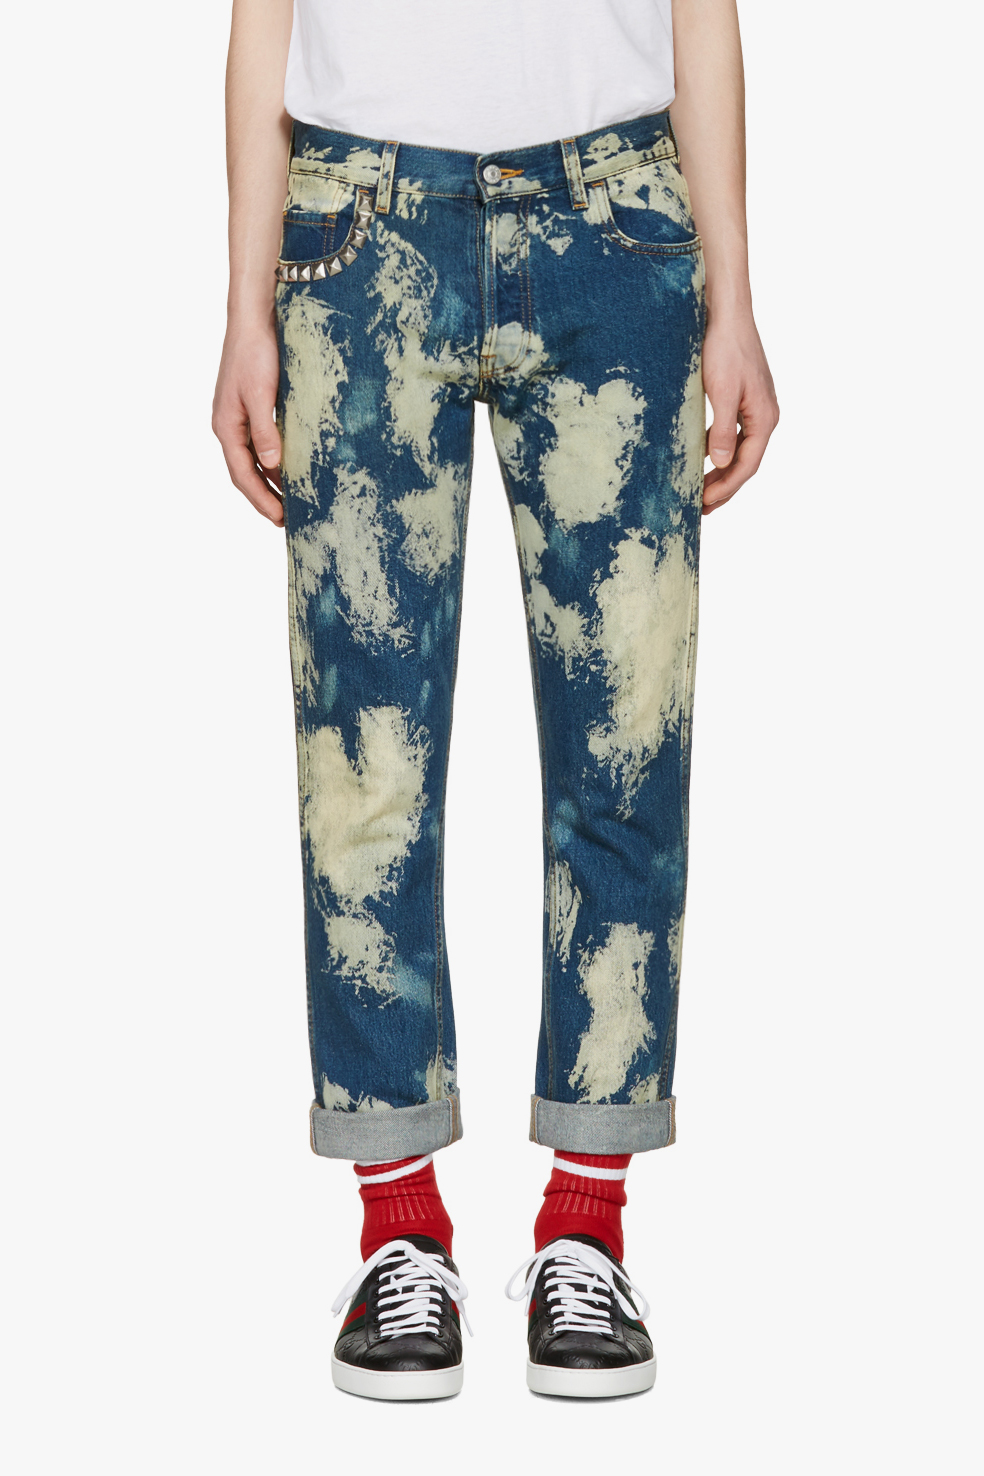 Gucci's Bleached Punk-Inspired Denim Jeans SSENSE - 1807620